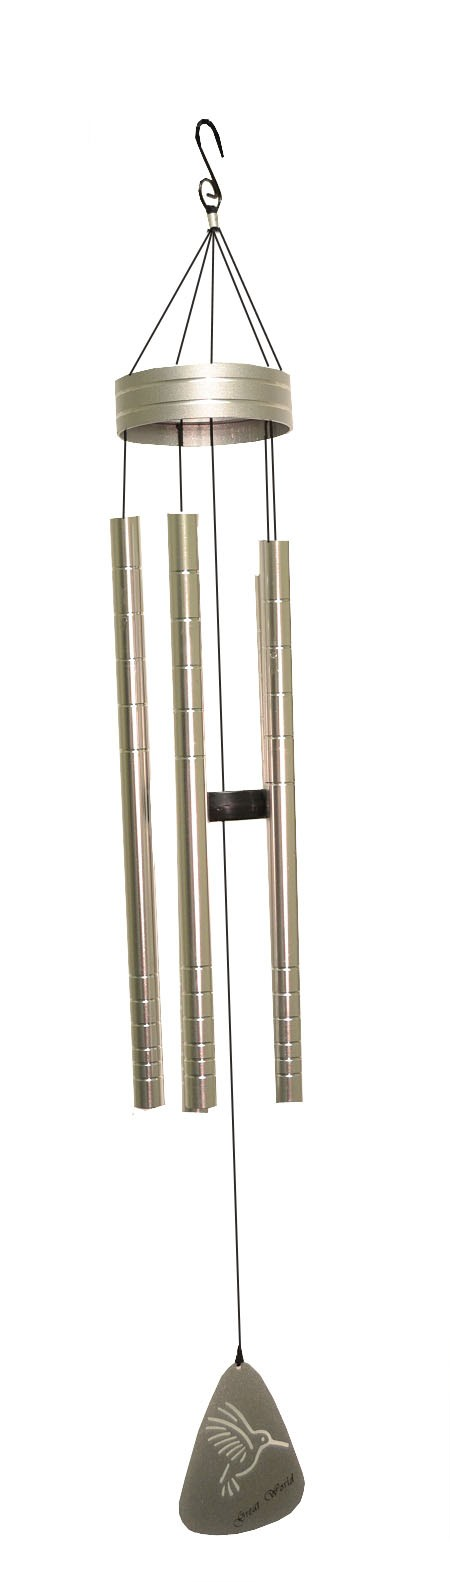 silver with line stripes wind chime ht 290003